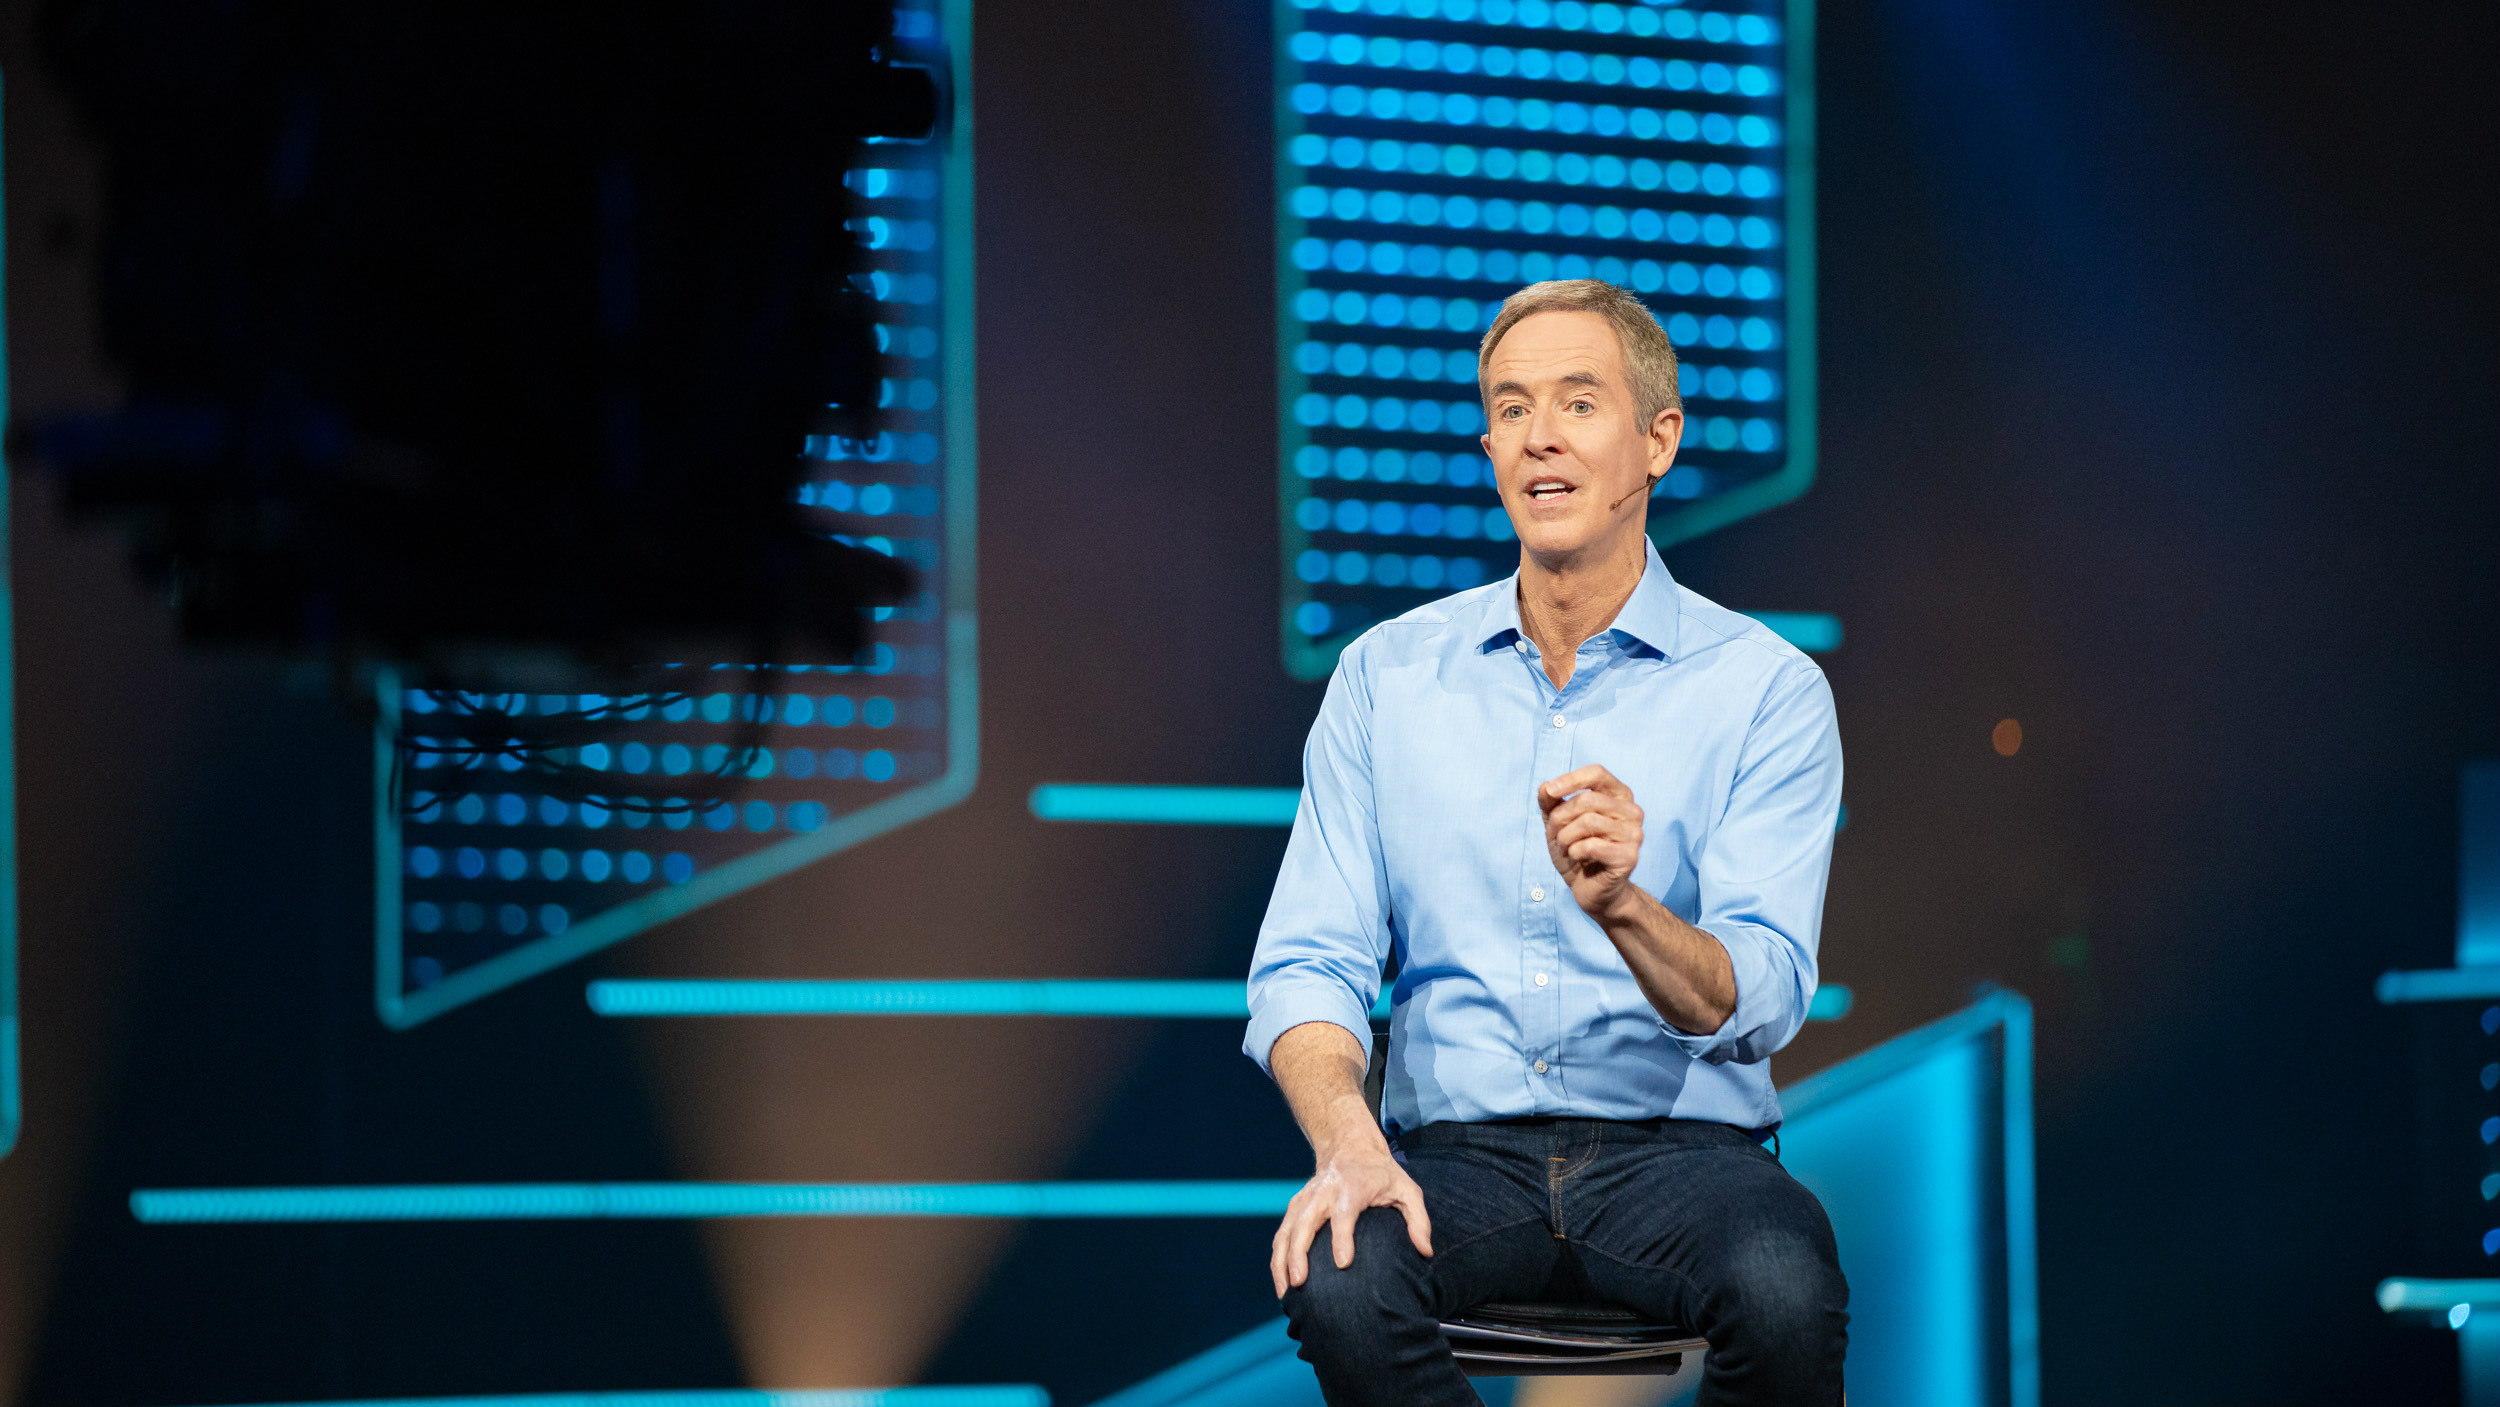 Andy Stanley Explains Why North Point Community Church is Suspending In-Person Services Until 2021 After Some Members Accused Him of 'Bowing to Caesar'